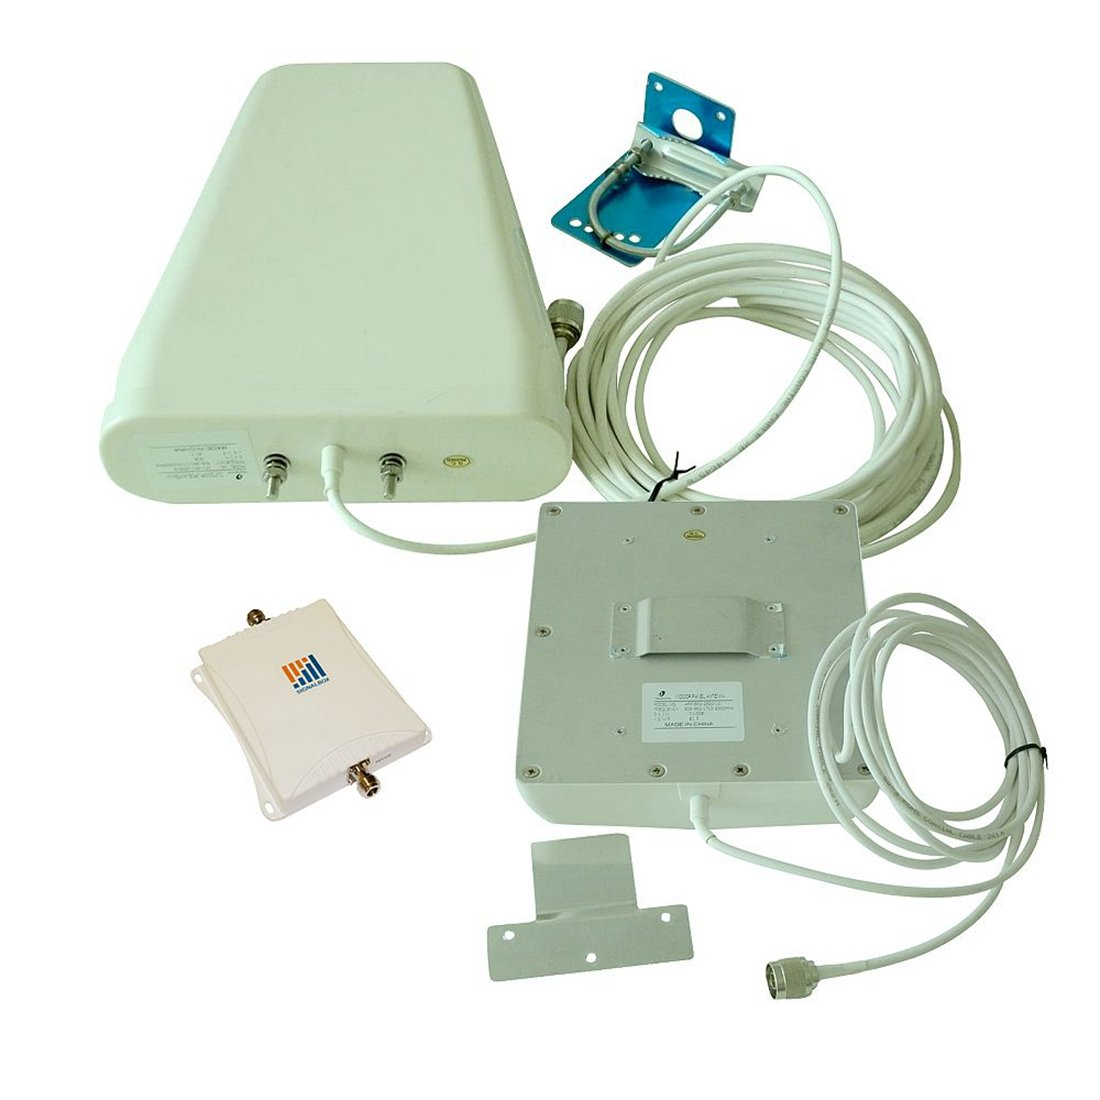 Signalbox 70db 850/1800mhz 3g 4g LTE Cellphone Signal Booster Mobile Phone Signal Repeater High Gain 12dBi Log-periodic + 7dBi Panel Antenna and 15m Cable Amplifier Kit (White Cable)